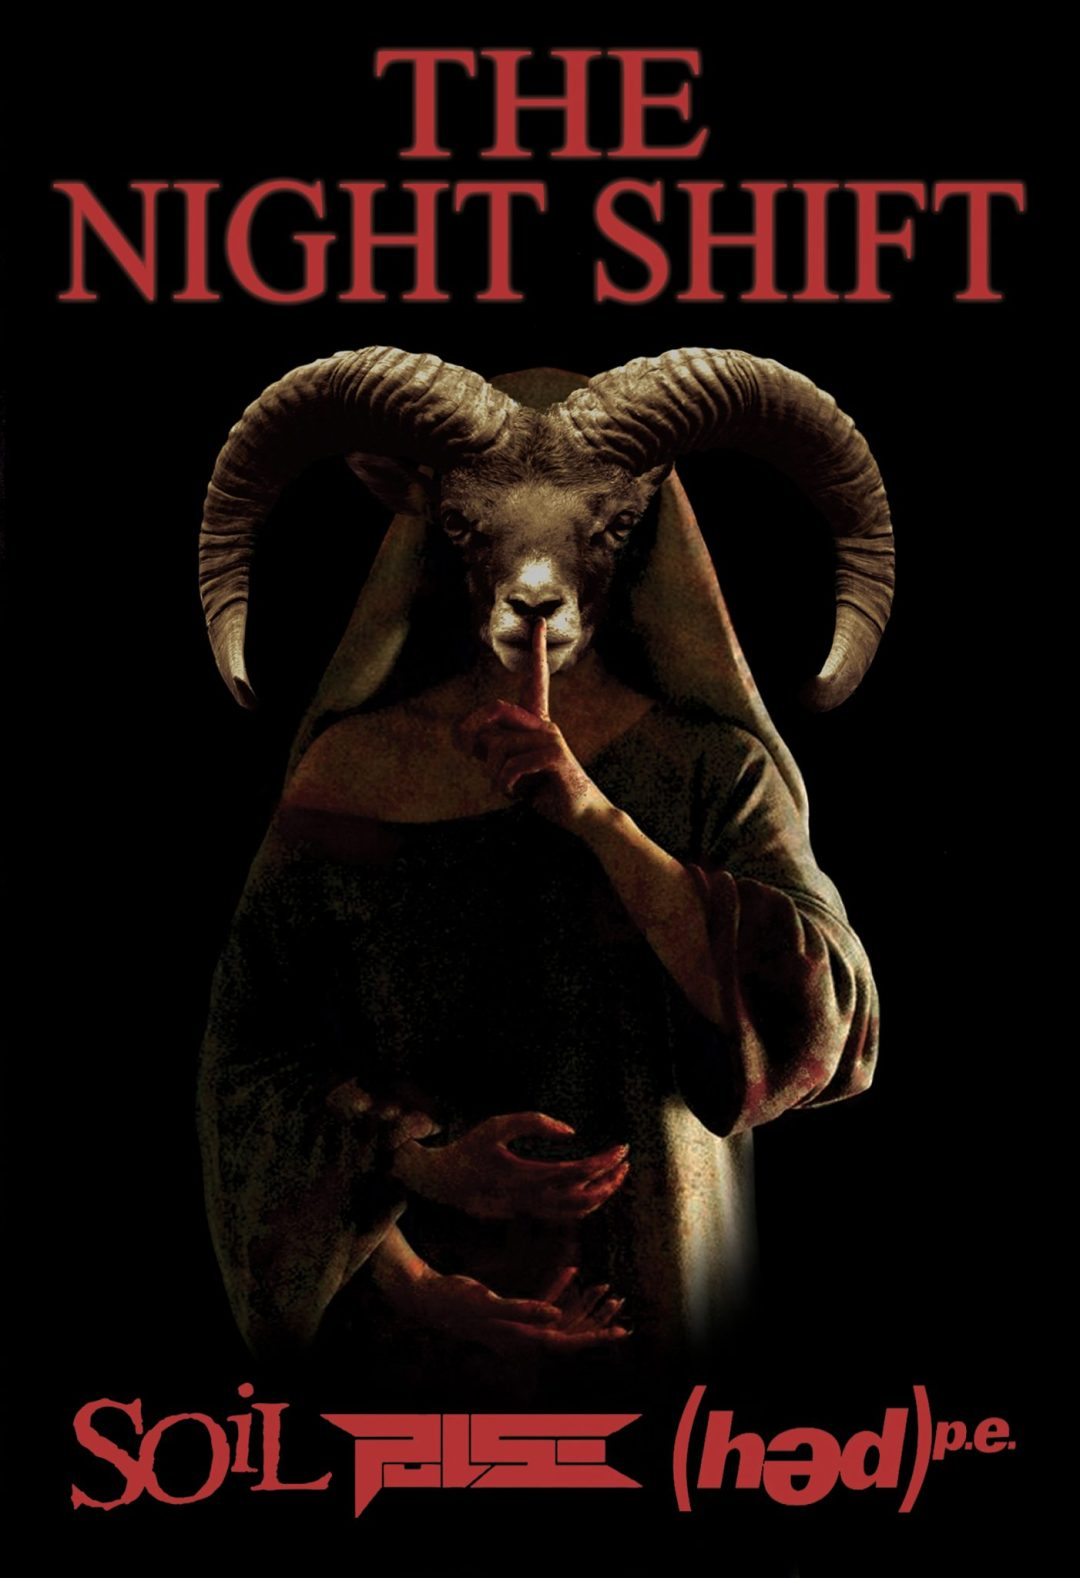 Demonic Horror Film 'The Night Shift' Comes to FAMILY VIDEO Stores Nationwide